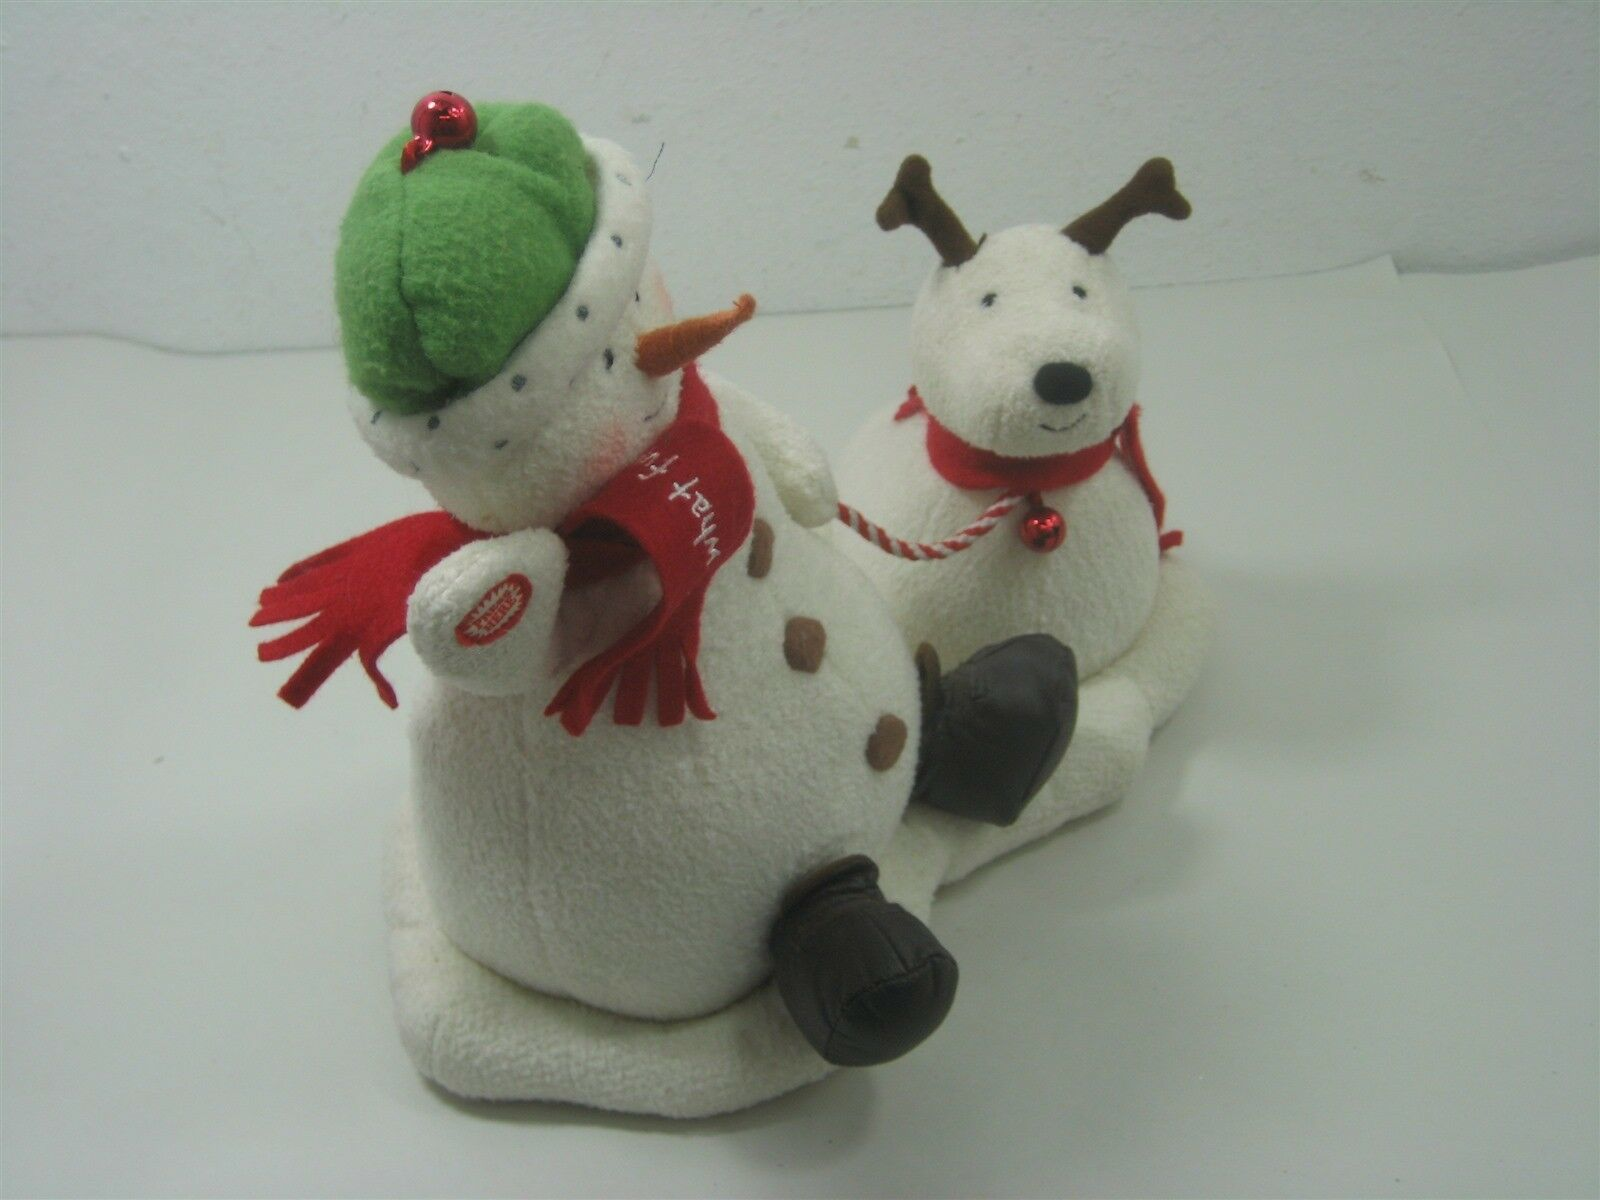 2004 Hallmark Jingle Pals Plush Snowman with Dog Animated Sings Jingle Bells image 2